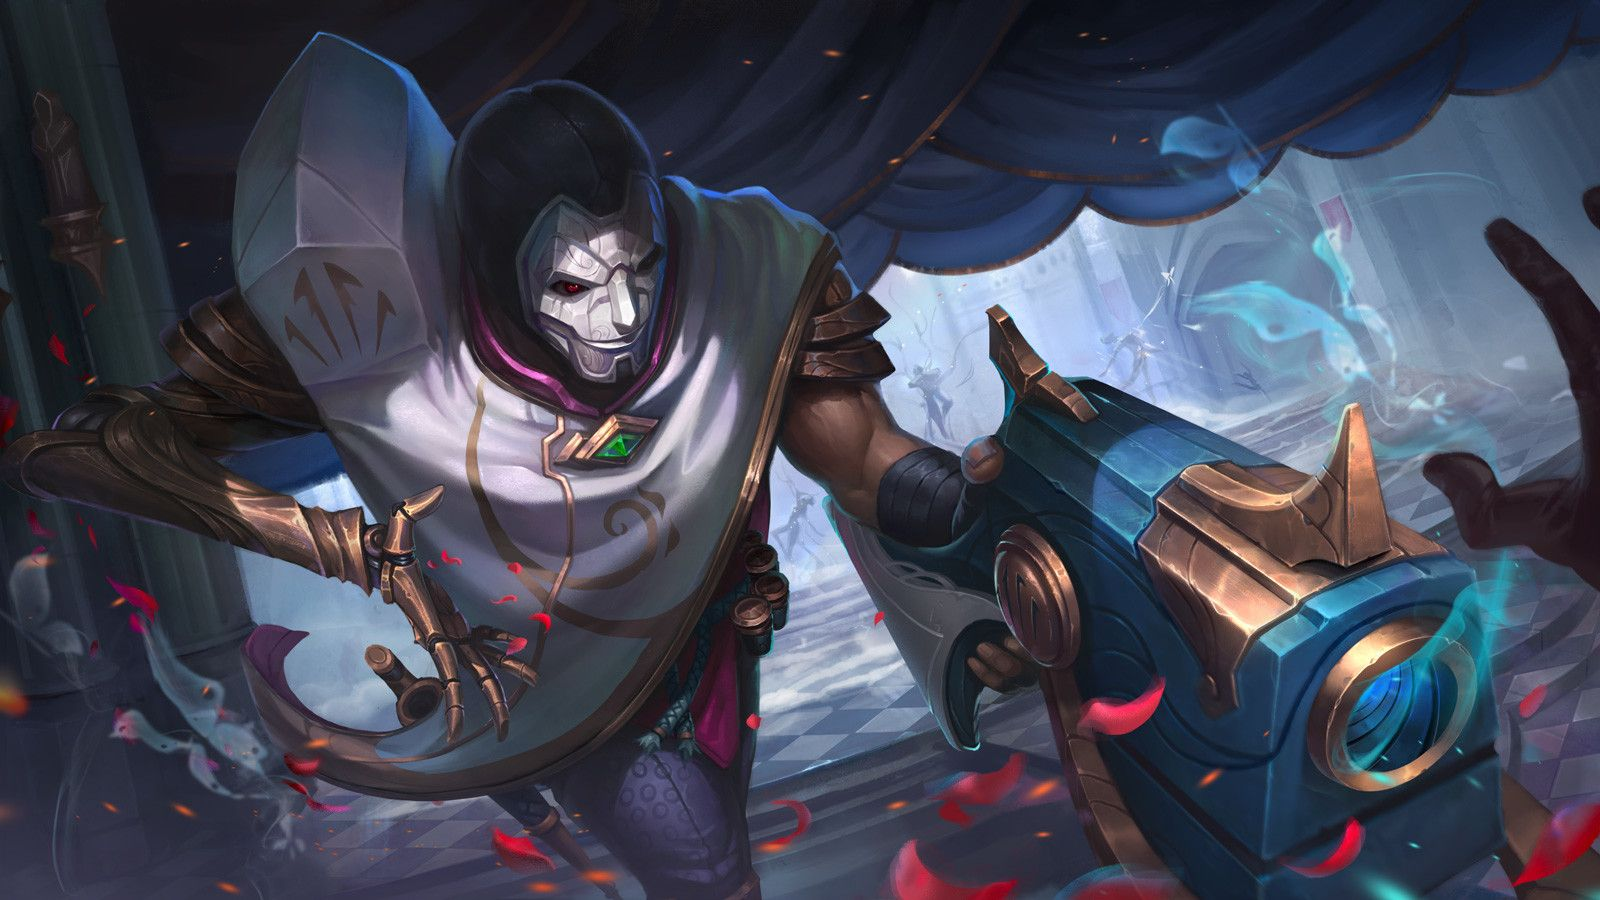 20 Skt T1 Jhin Splash Pictures And Ideas On Meta Networks